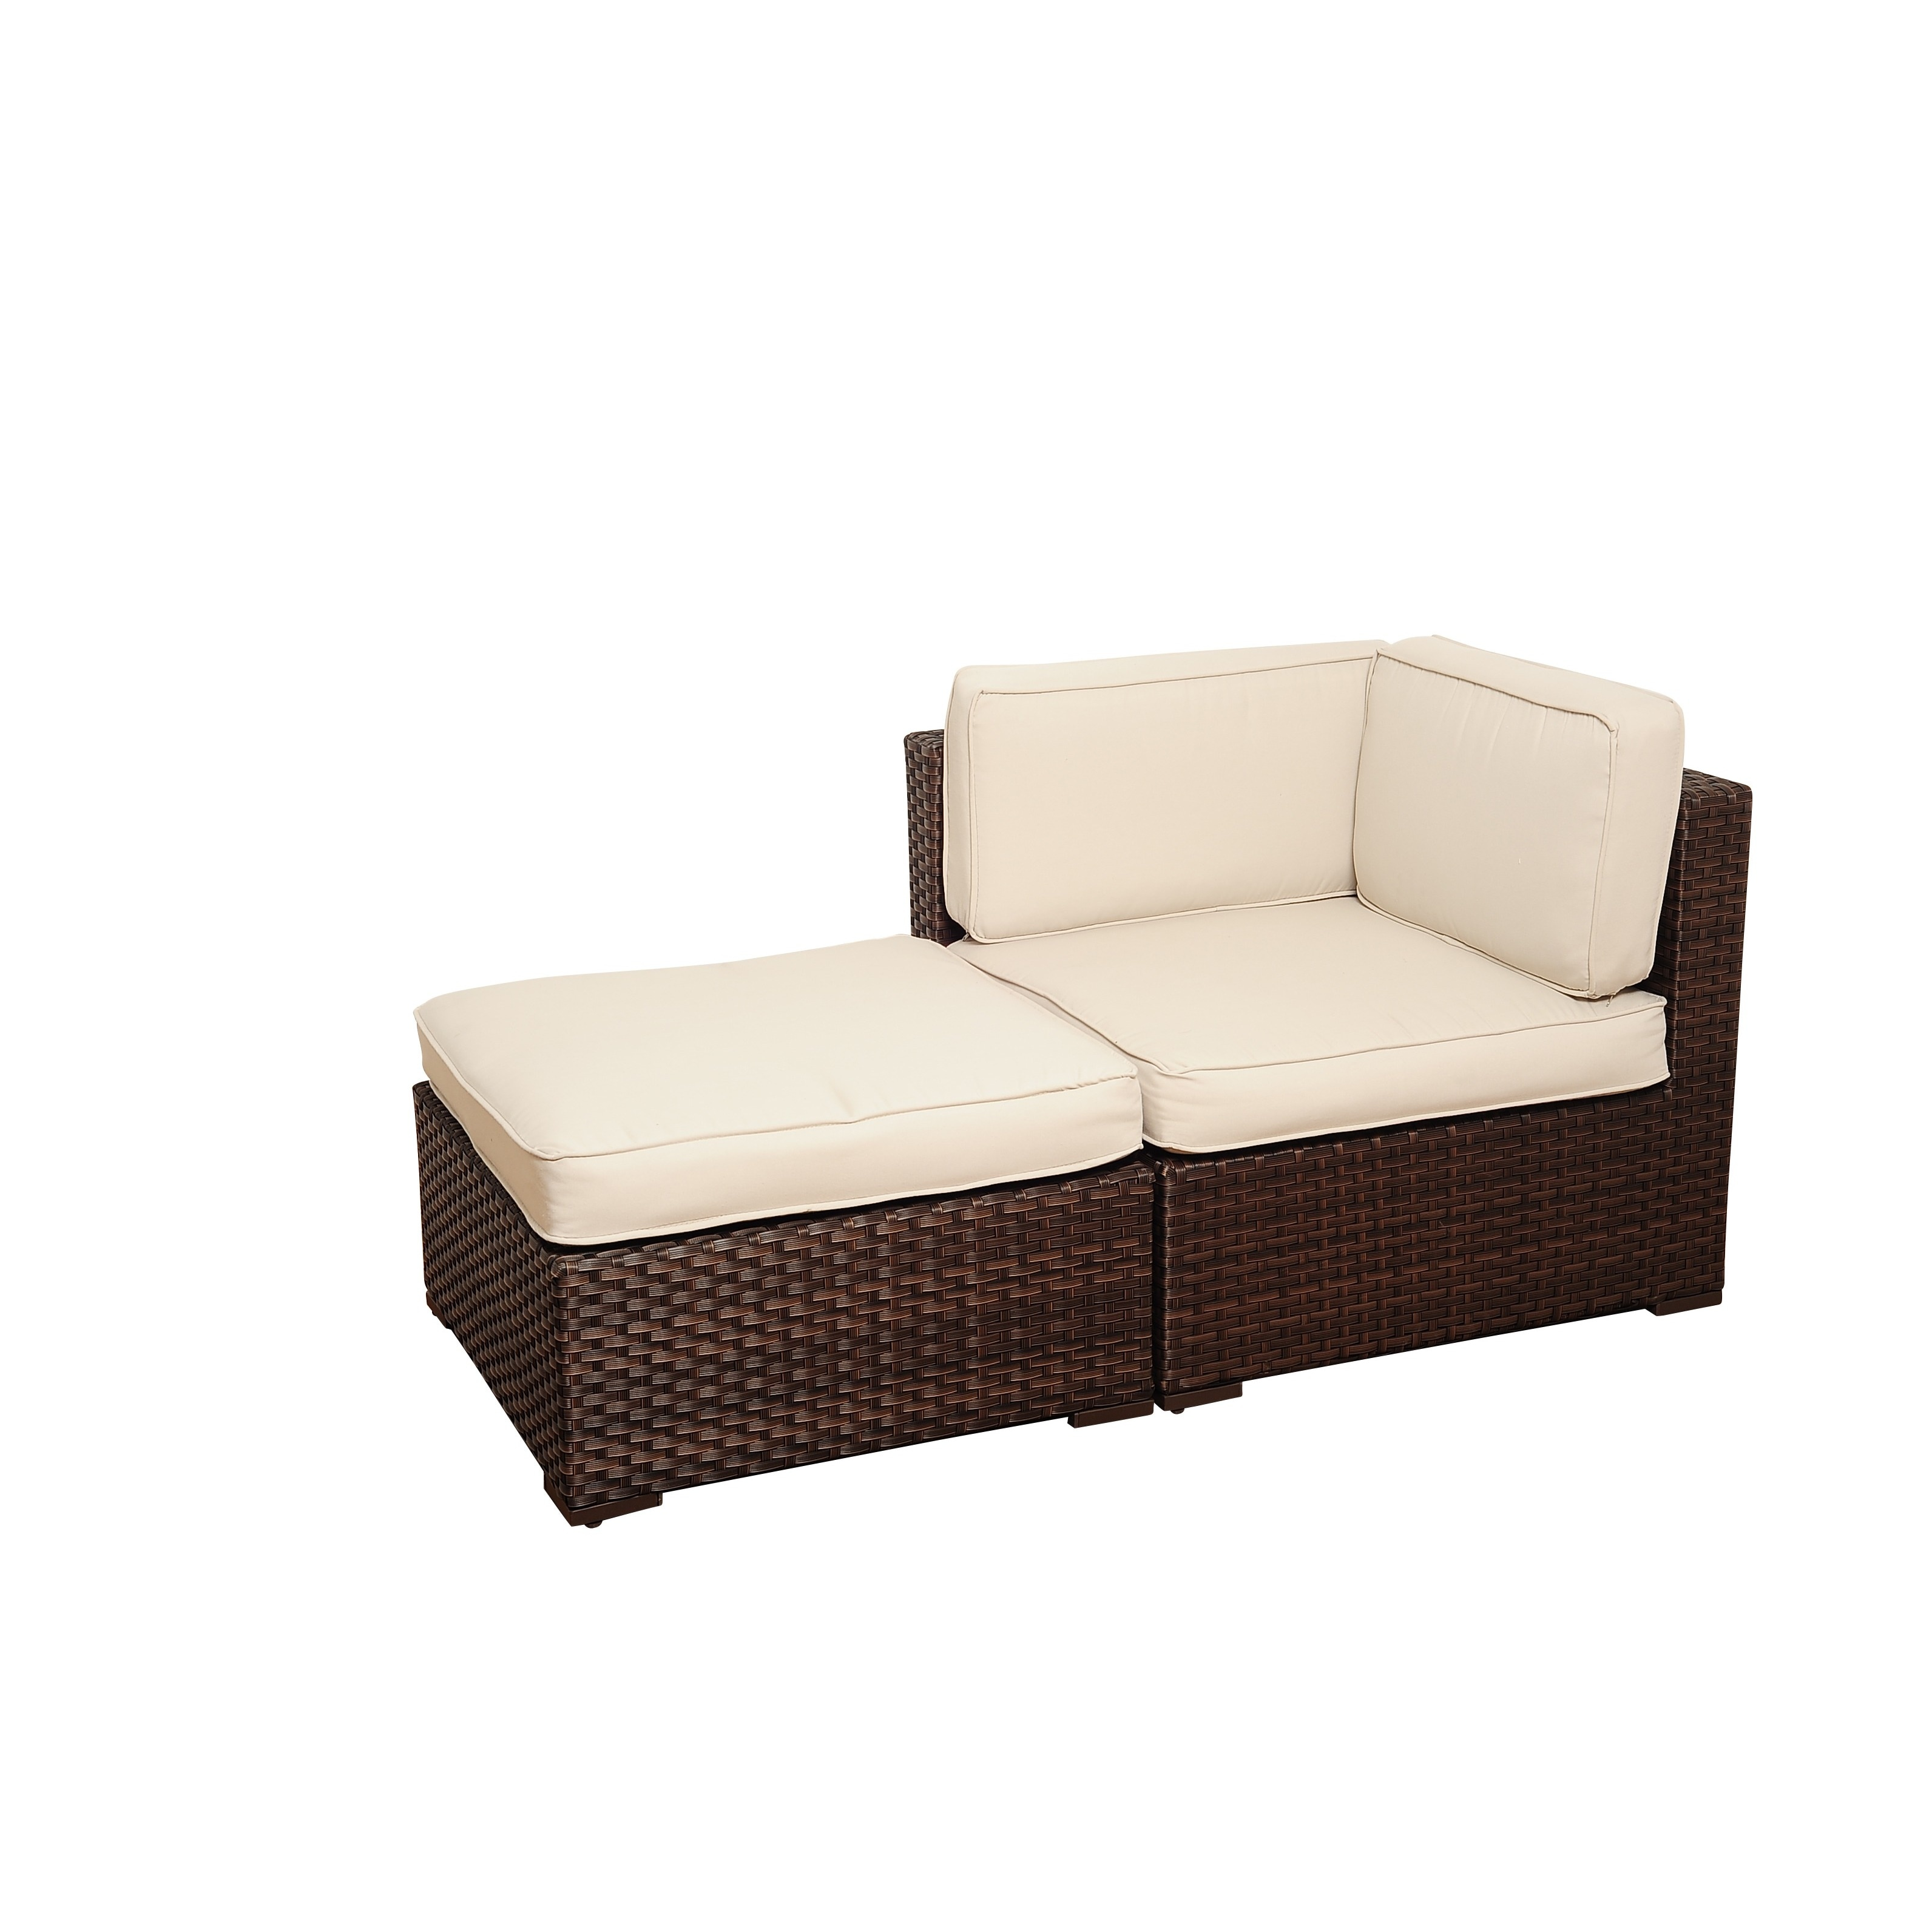 Atlantic Naples 7 Piece Patio Furniture Set   Free Shipping Today    Overstock.com   11547800